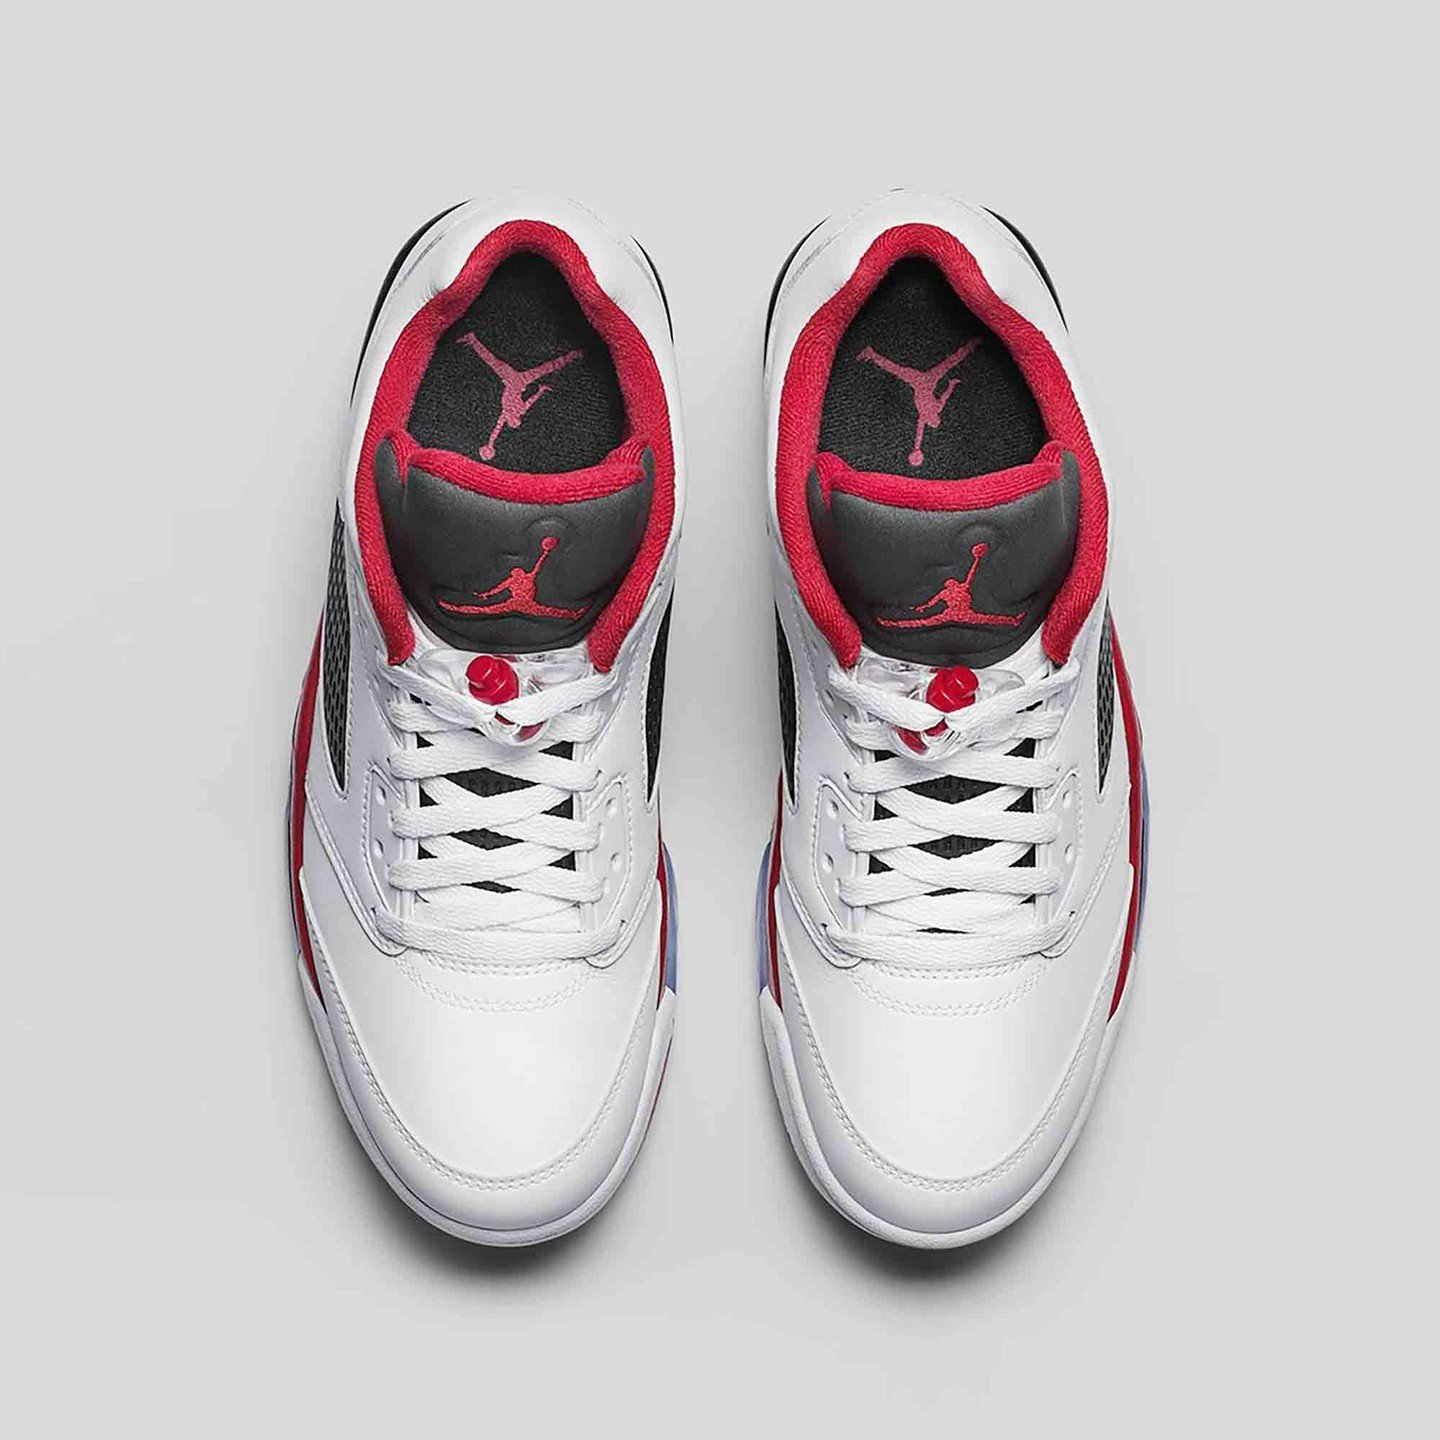 Jordan Air Jordan 5 Low Retro 'Fire Red' White / Fire Red / Black 819171-101-42.5